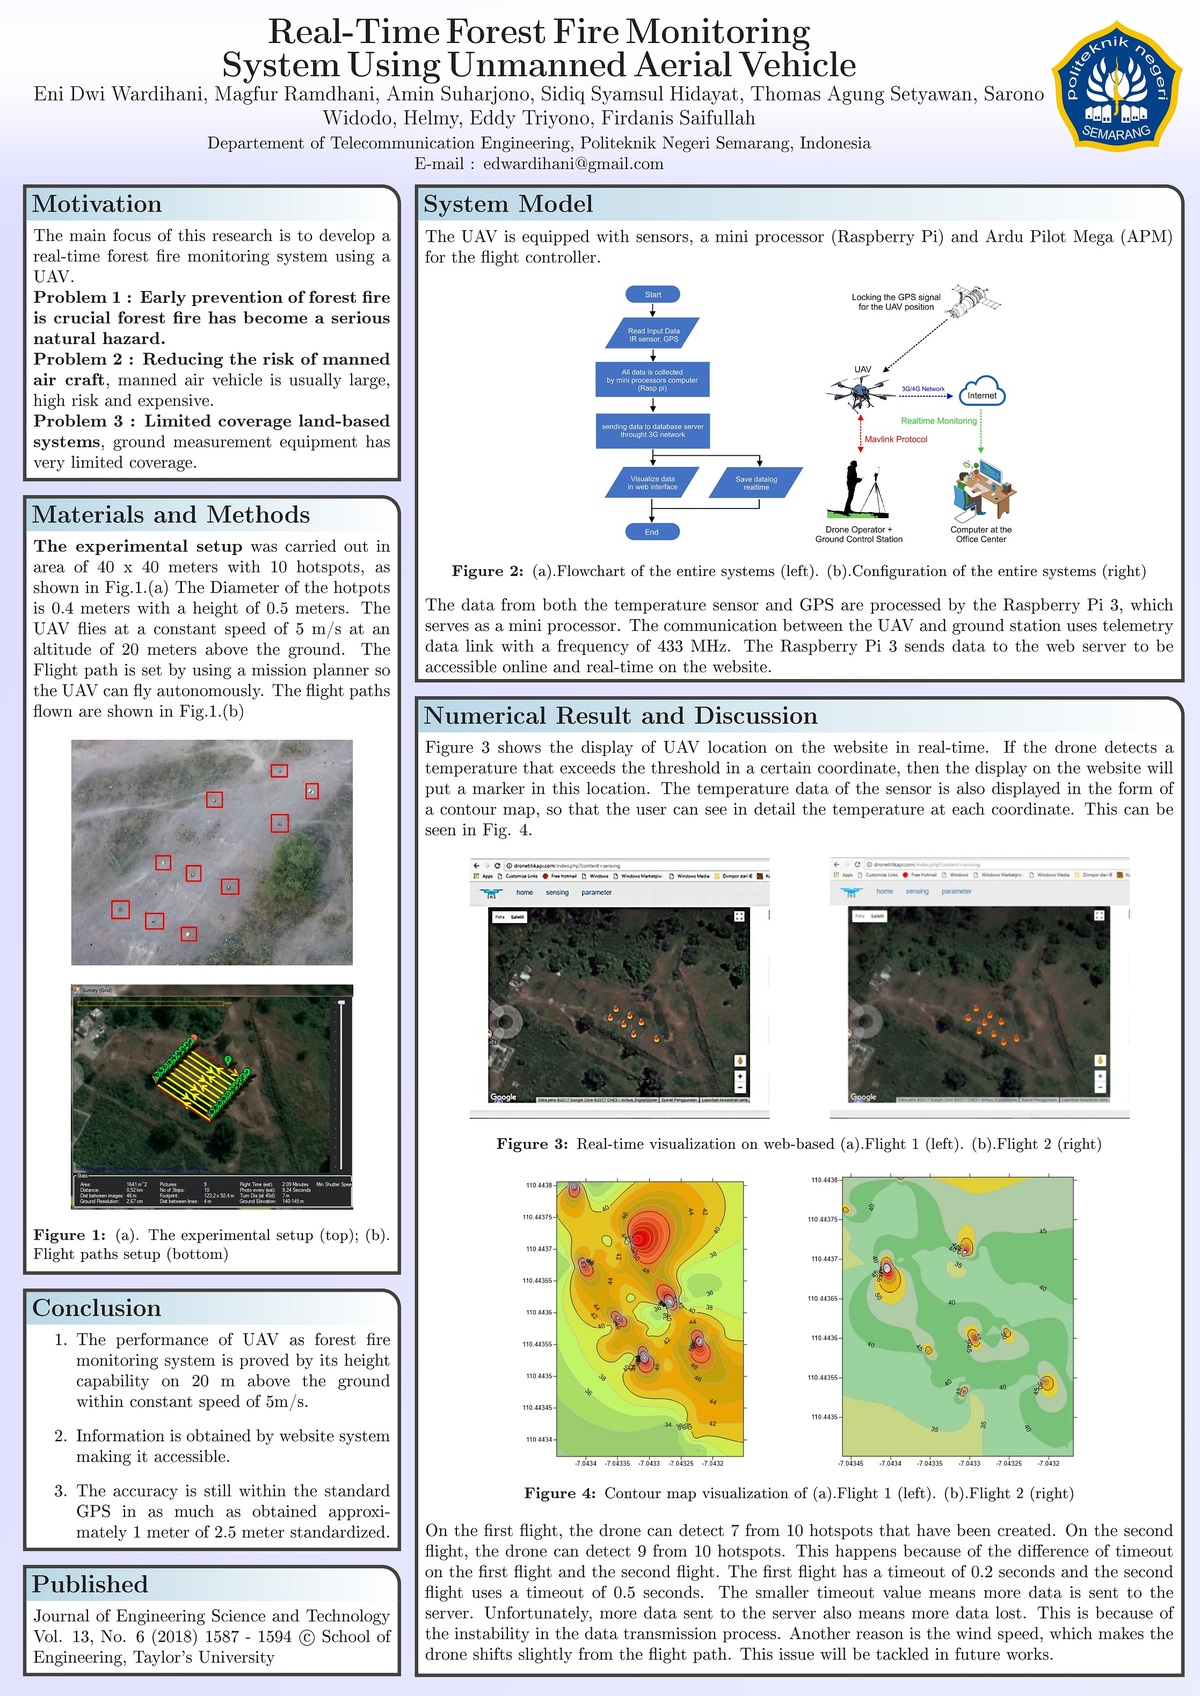 REAL-TIME FOREST FIRE MONITORING SYSTEM USING UNMANNED AERIAL VEHICLE